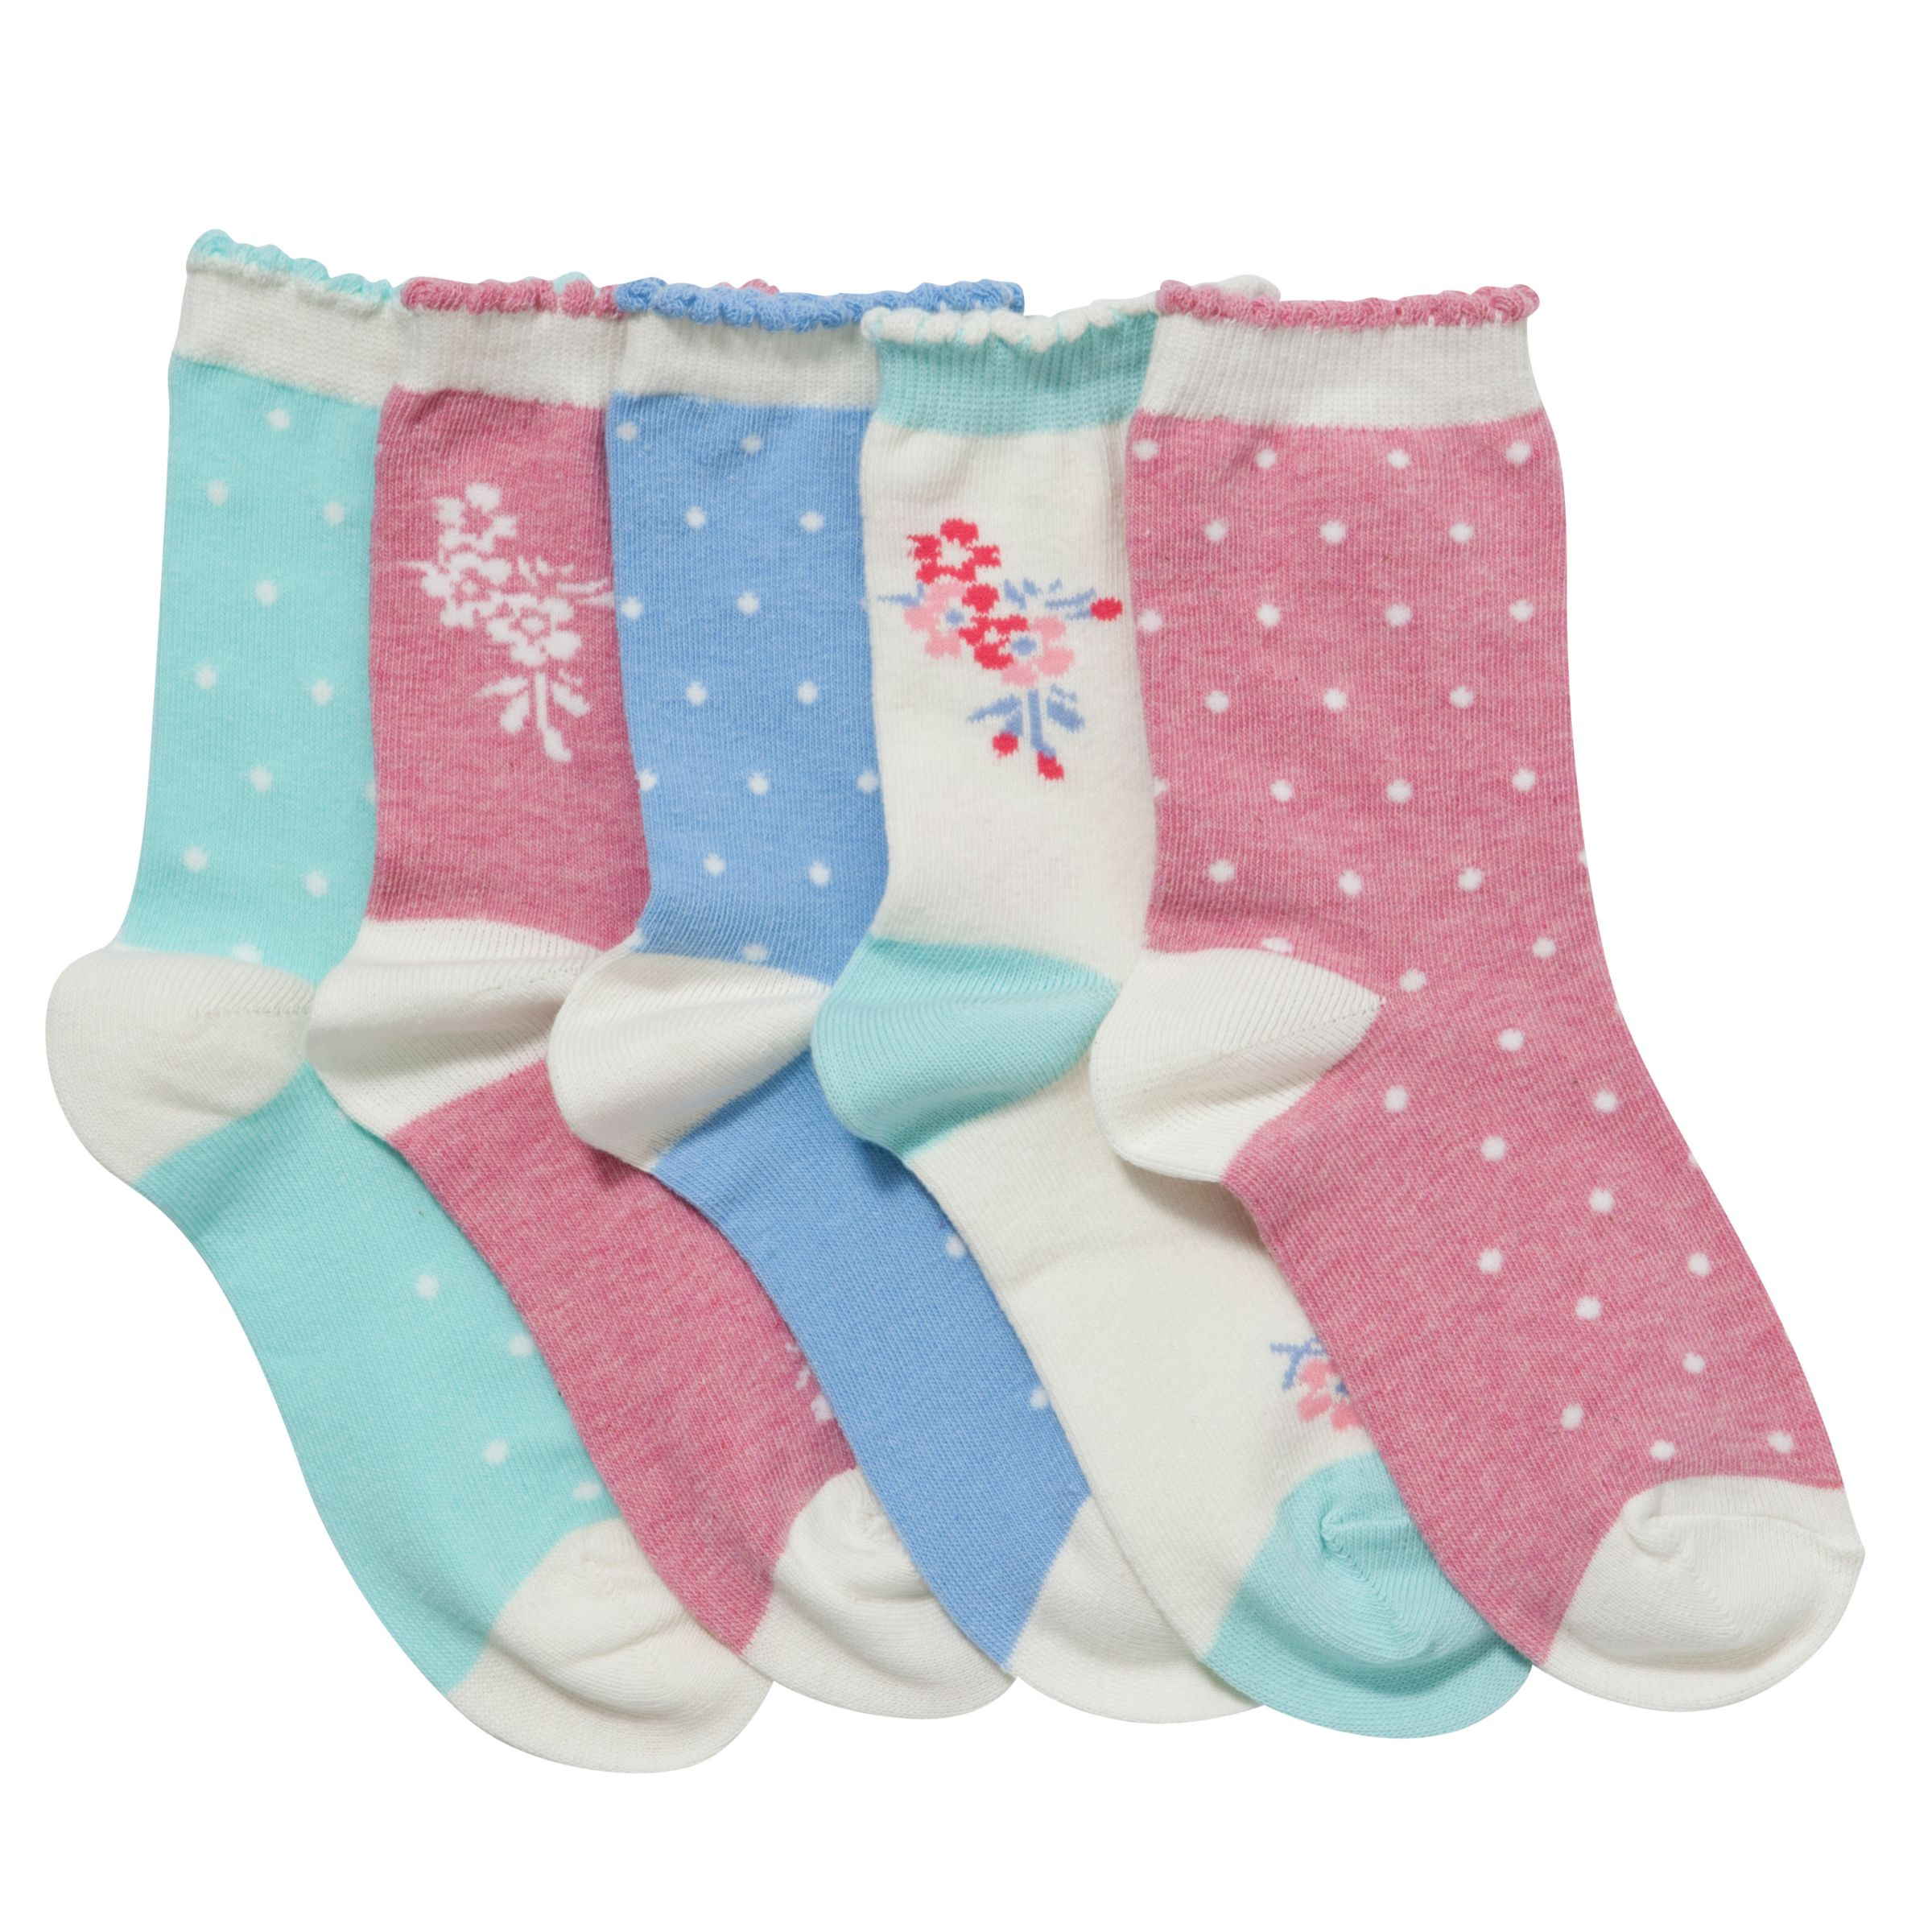 John Lewis Girl Vintage Floral Socks, Pack of 5, Multi